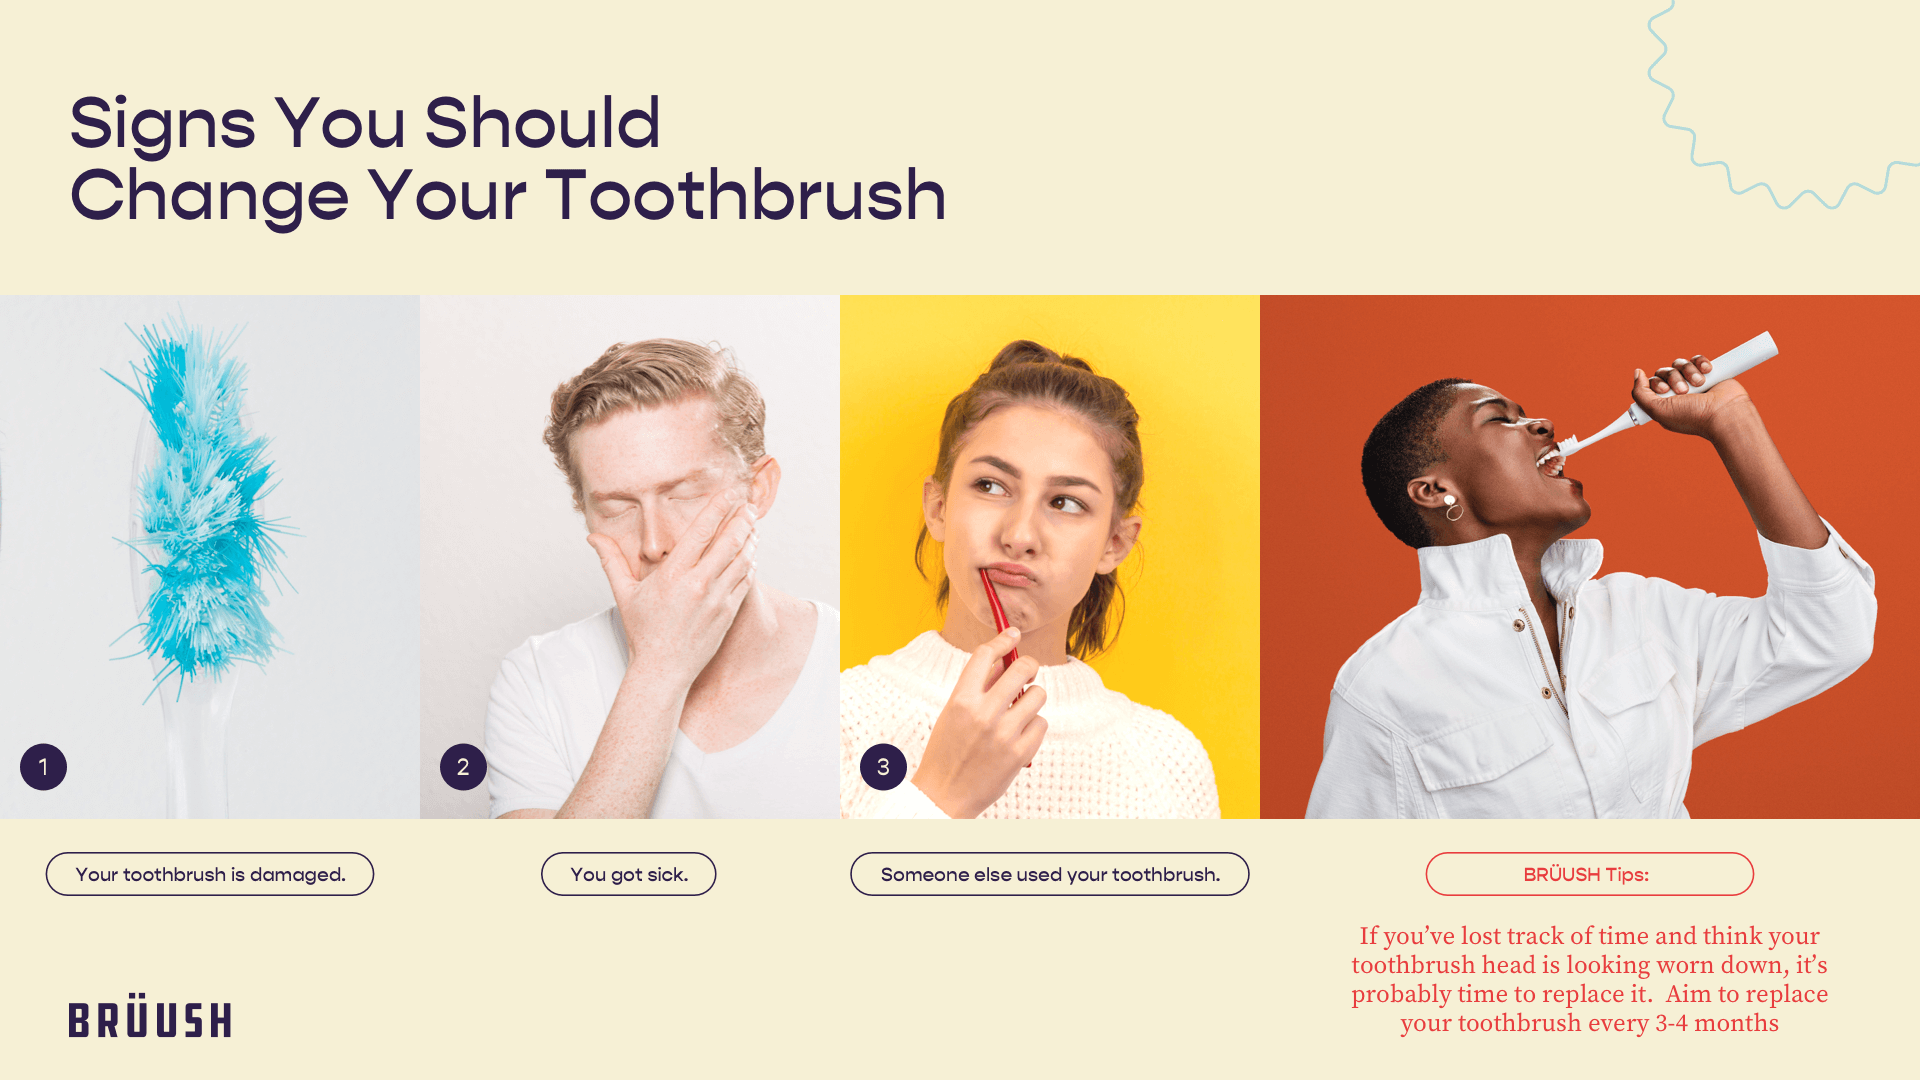 Top Signs You Should Change Your Toothbrush